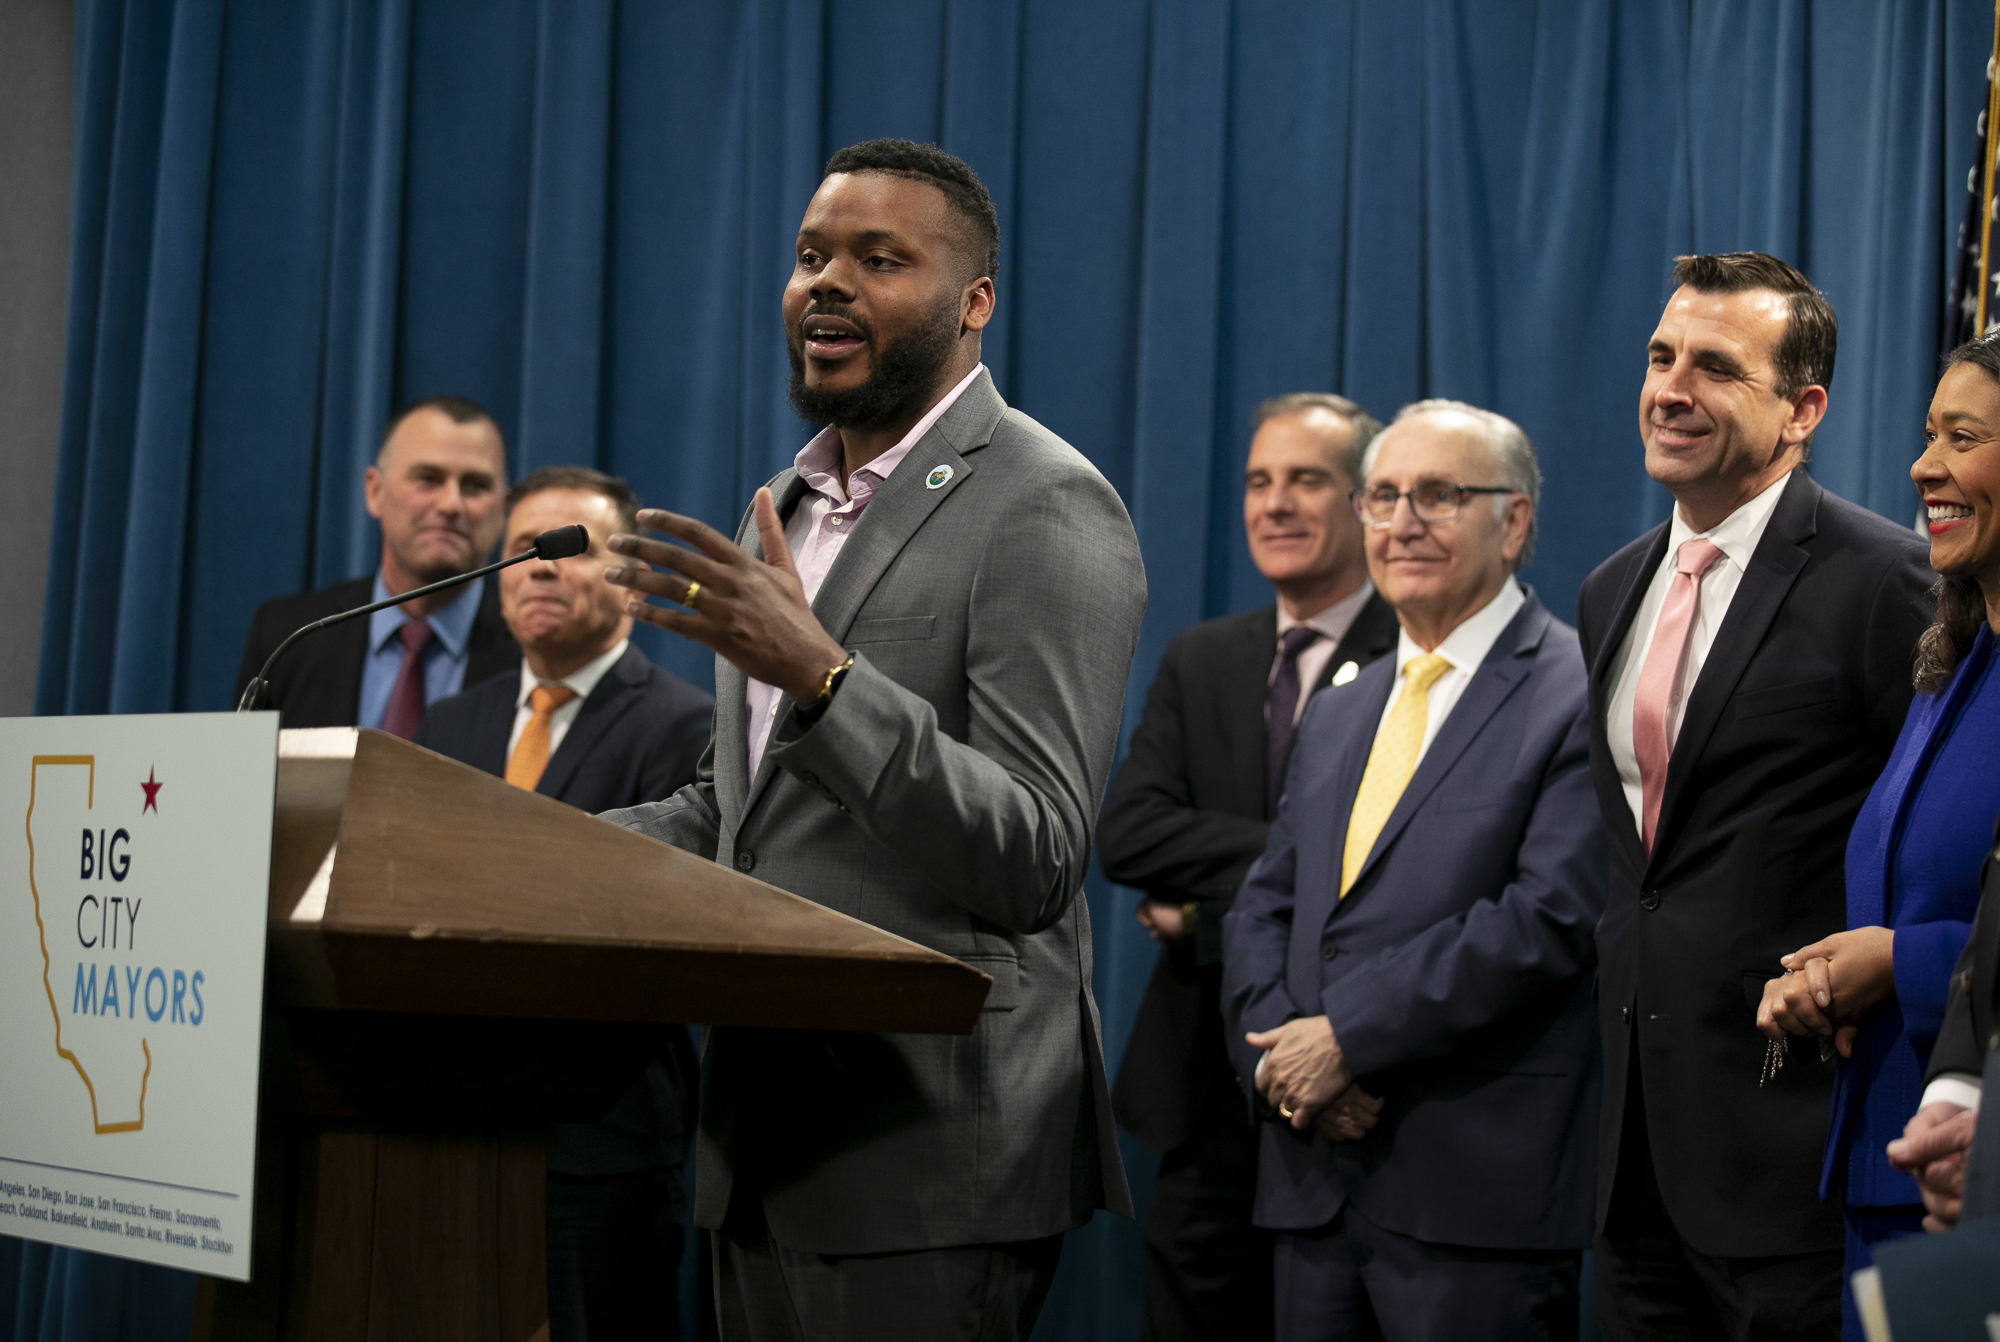 Stockton Mayor Michael Tubbs speaks during a press conference by Big City Mayors, a coalition of mayors from California's 13 largest cities focused on finding solutions to homelessness, at the California Captiol on March 9, 2020. Photo by Anne Wernikoff for CalMatters